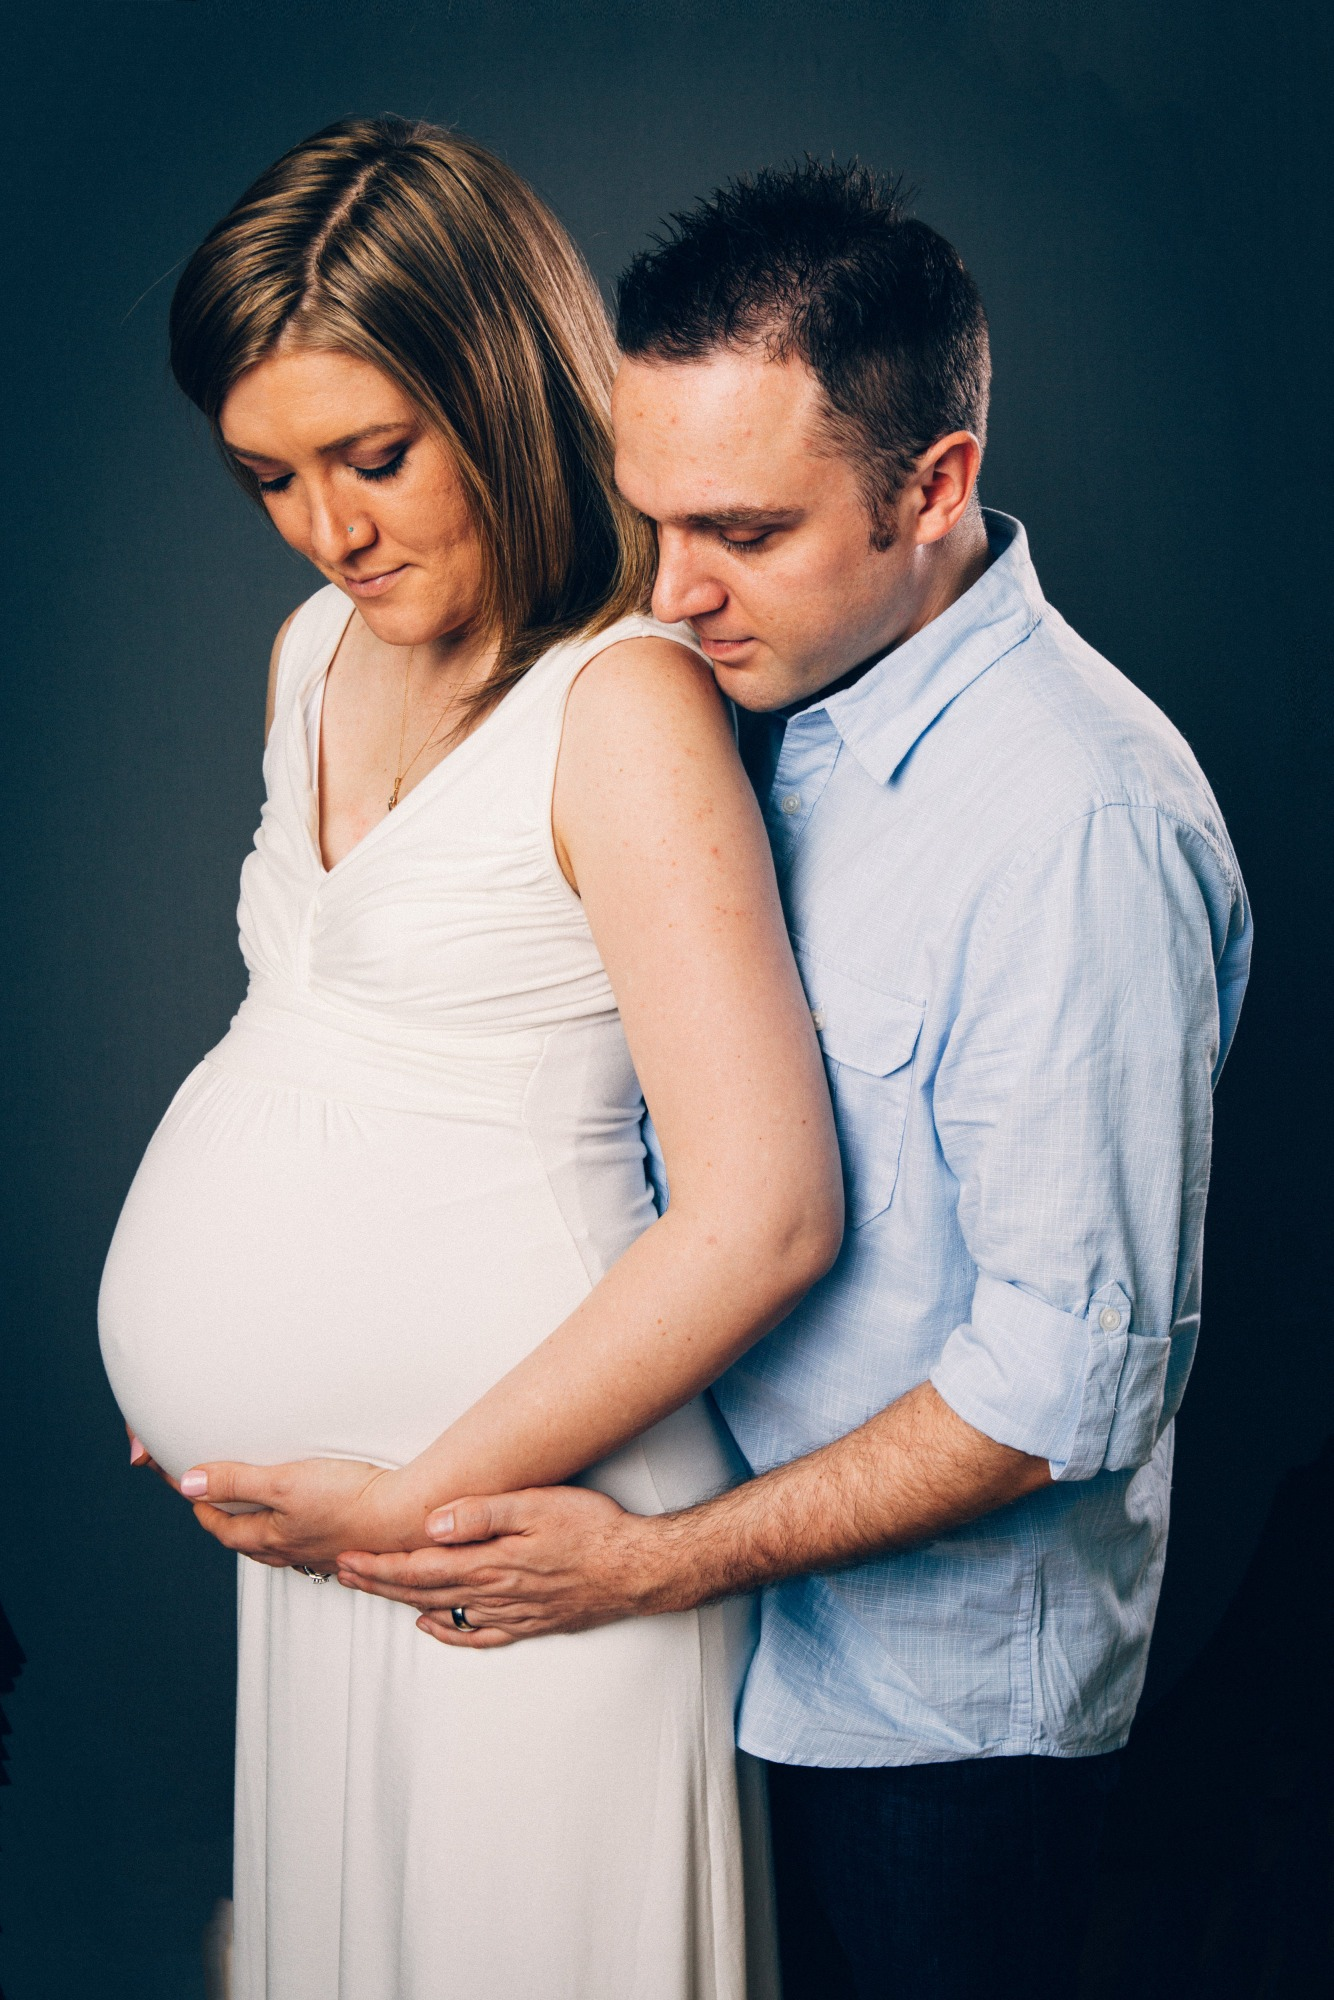 Maternity Photography | original_739a81333fb1a9a_018_-_Shonsey_Maternity_Studio_-_by_B_Skigen_-_L37A5334-Edit.jpg